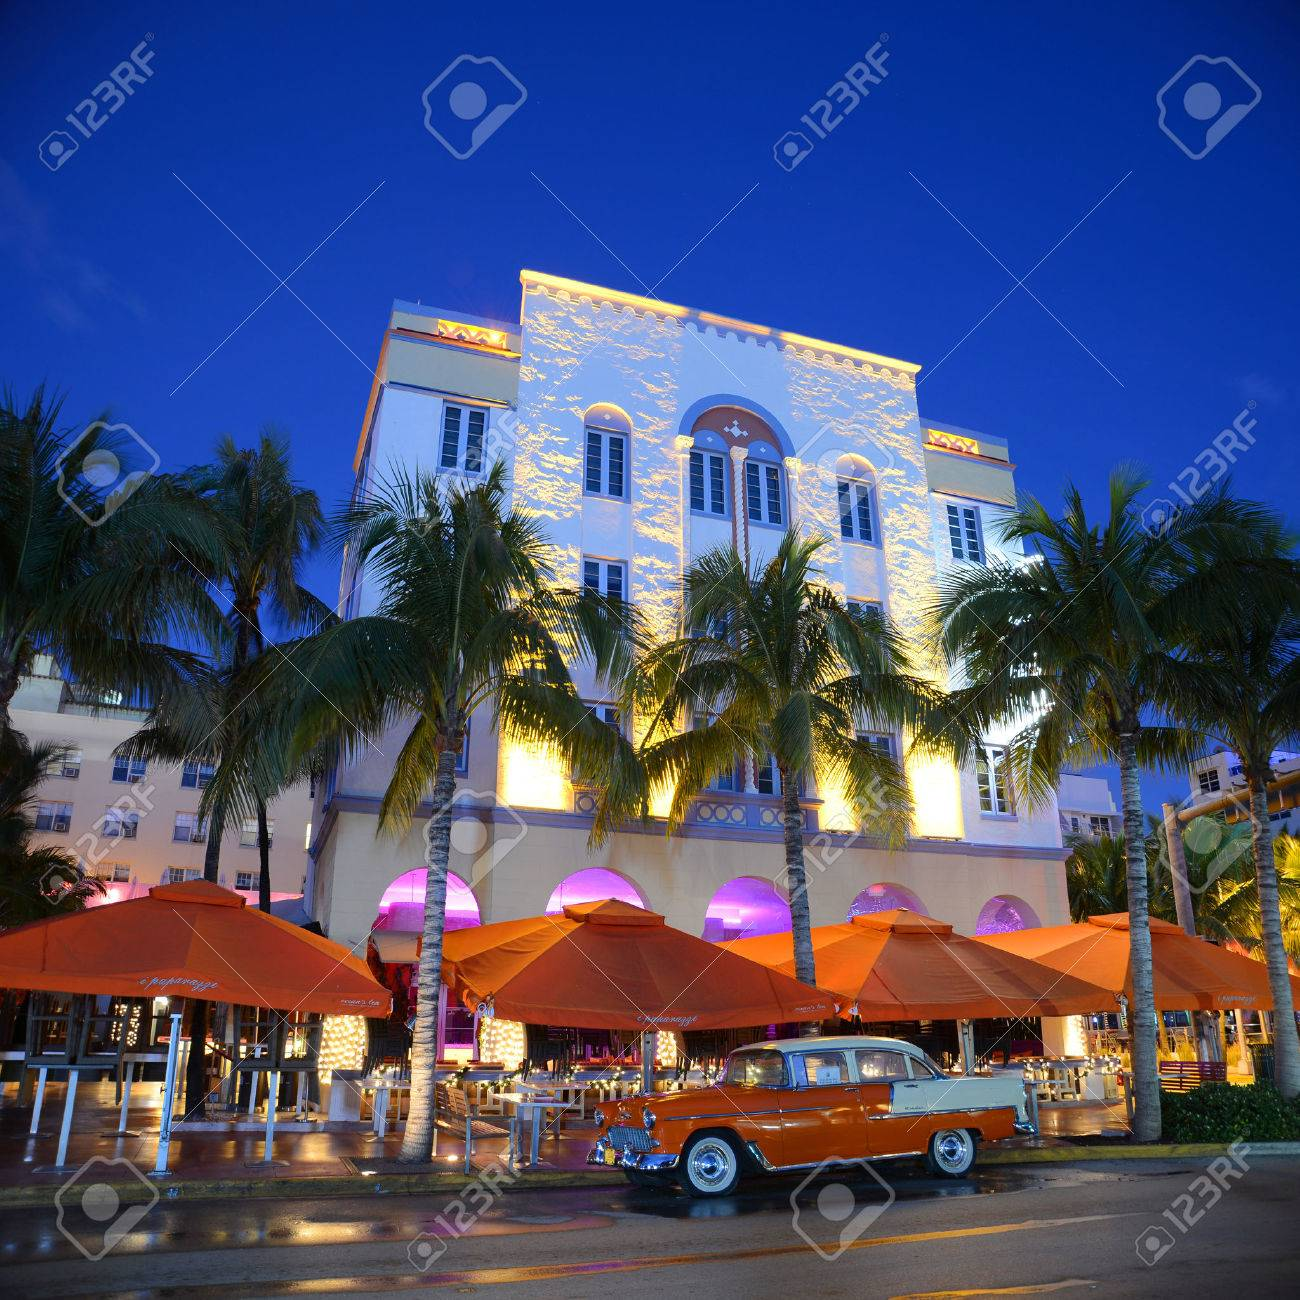 Edison Hotel With Art Deco Style Building And Antique Chevrolet ...